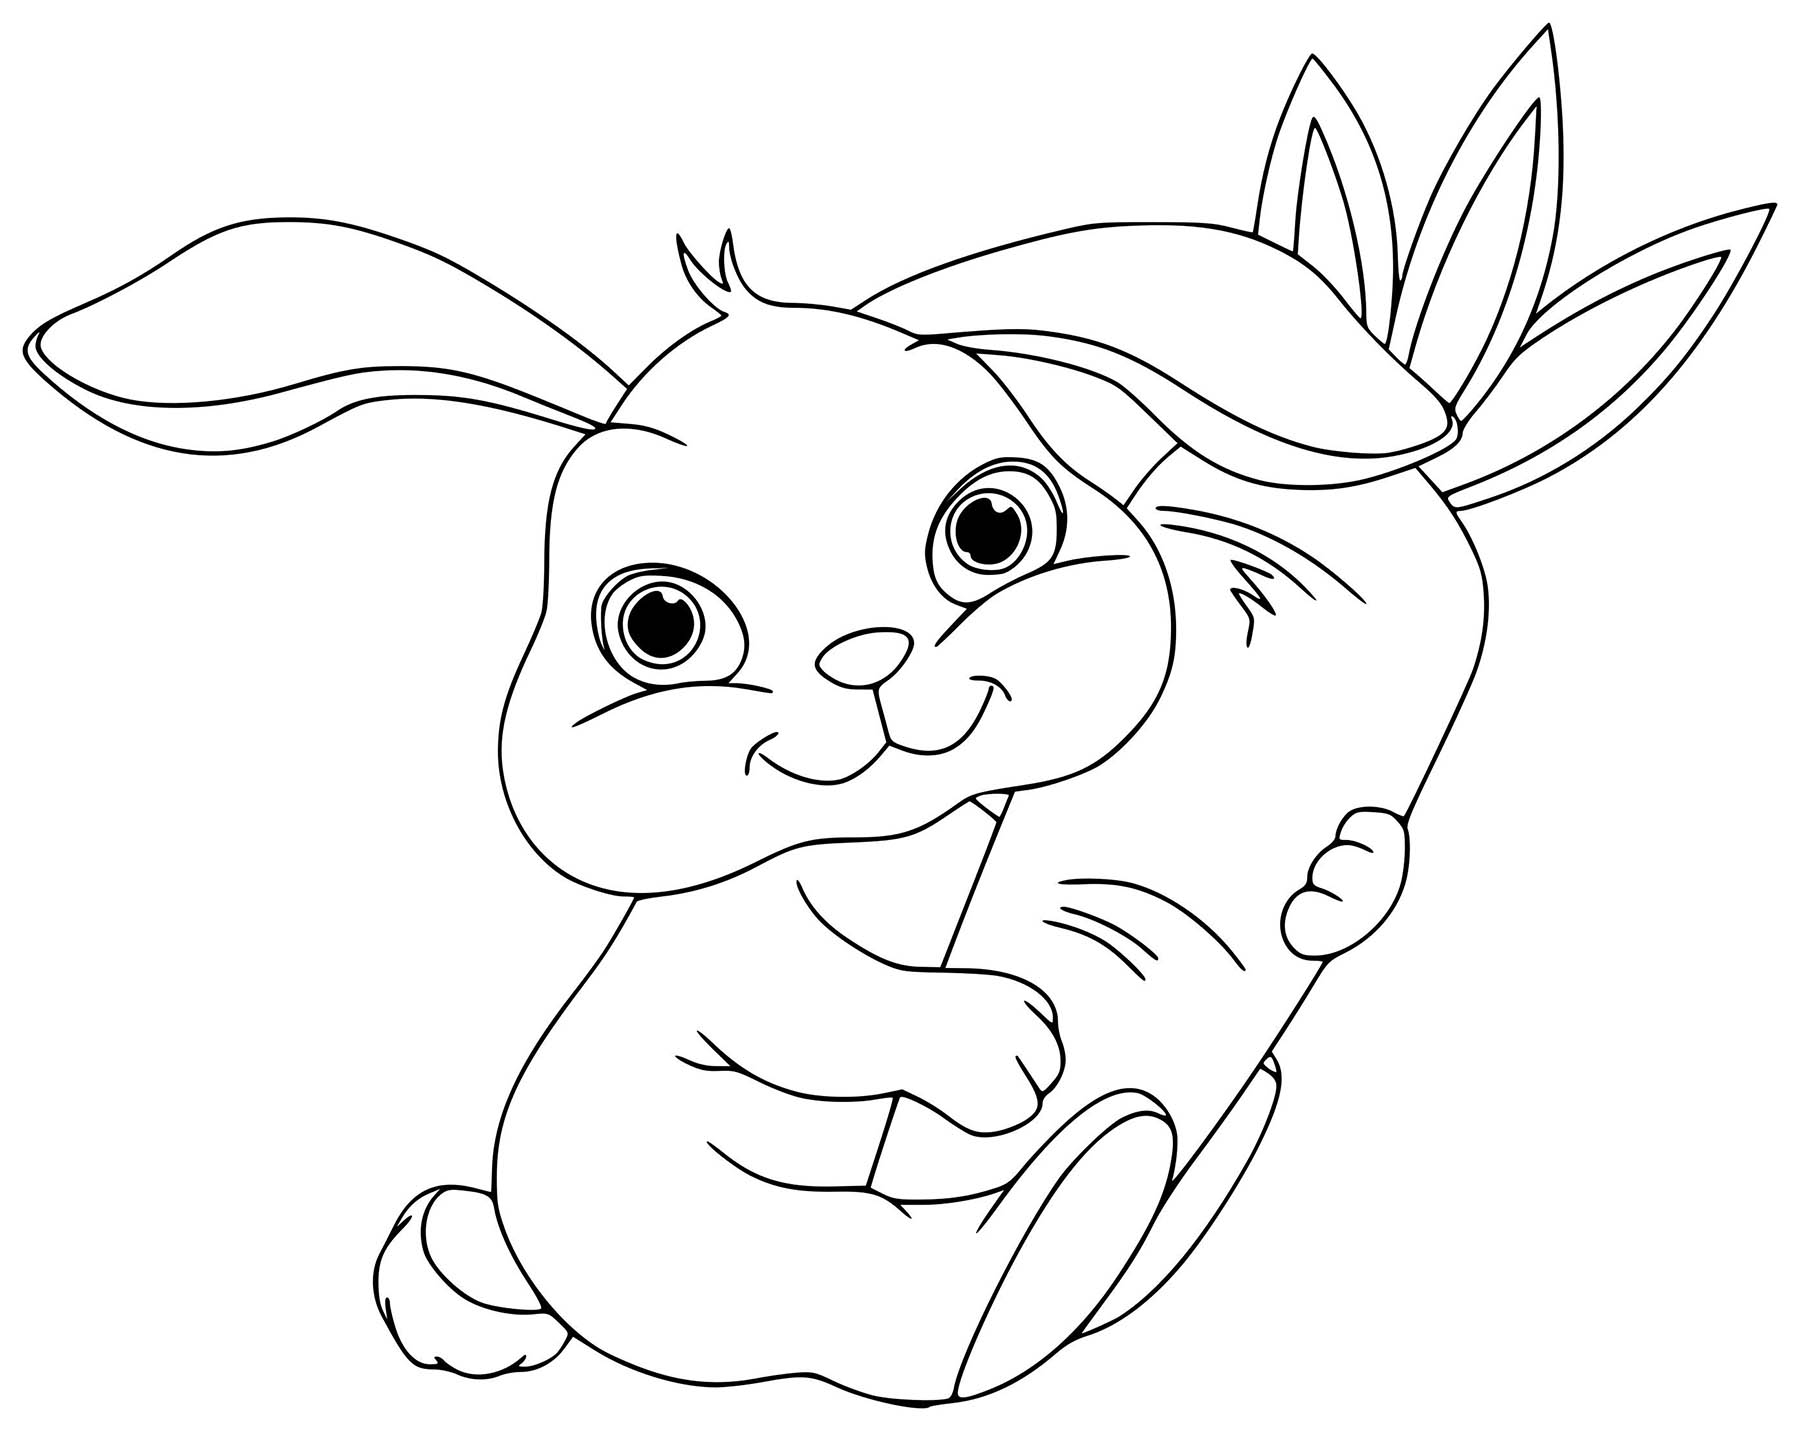 bunny coloring picture get this online printable rabbit coloring pages 4g45s coloring bunny picture